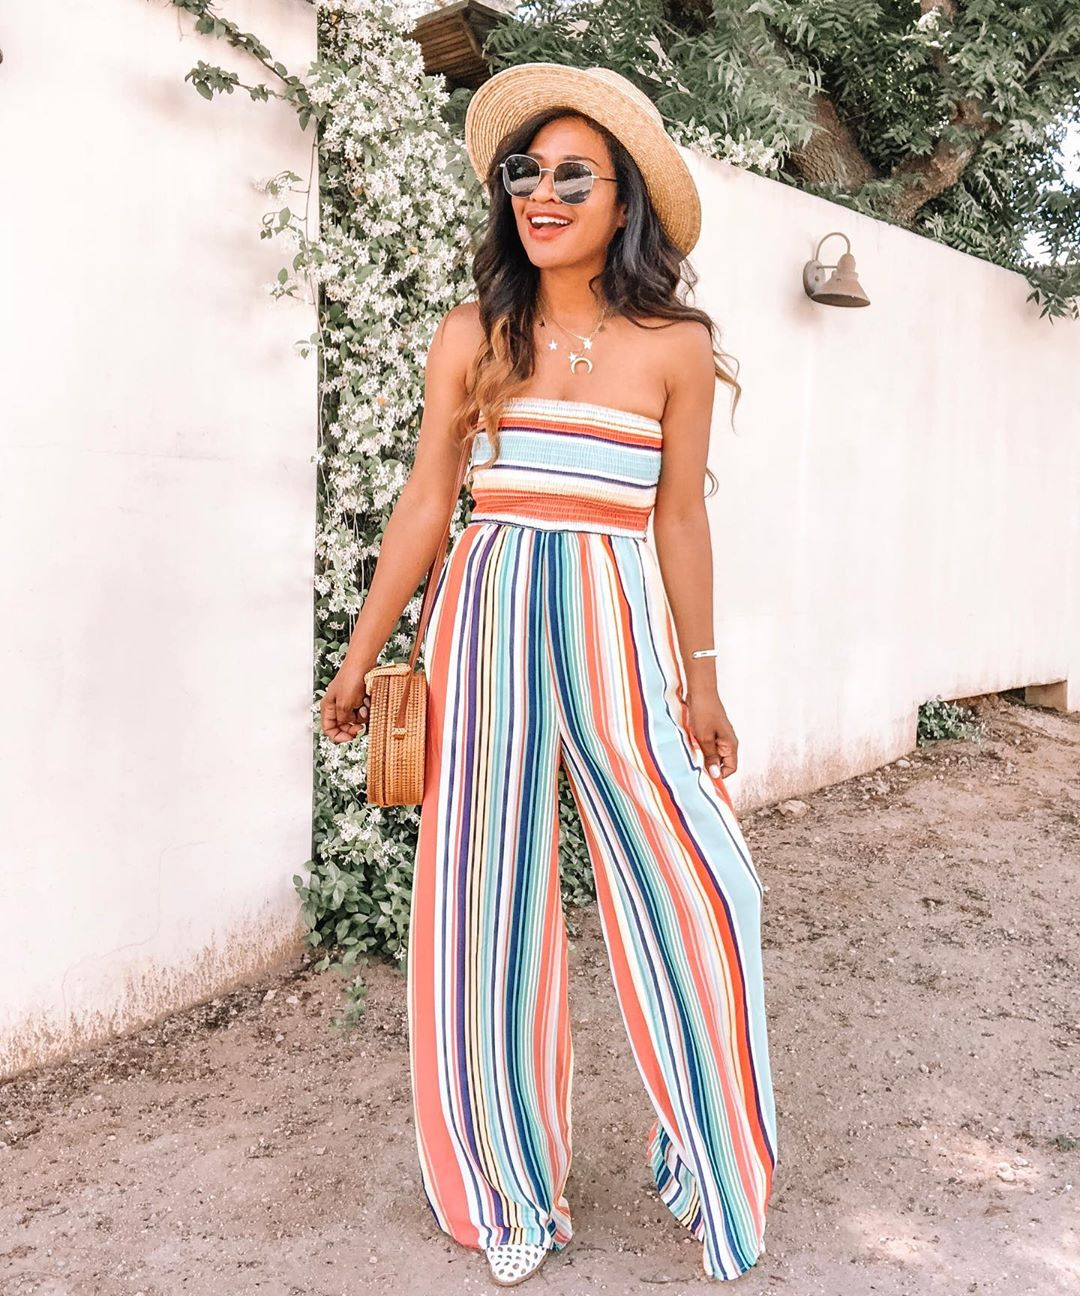 Summer is coming! Here Are The Best Summer Outfit Ideas You Can Copy @cristalaisha